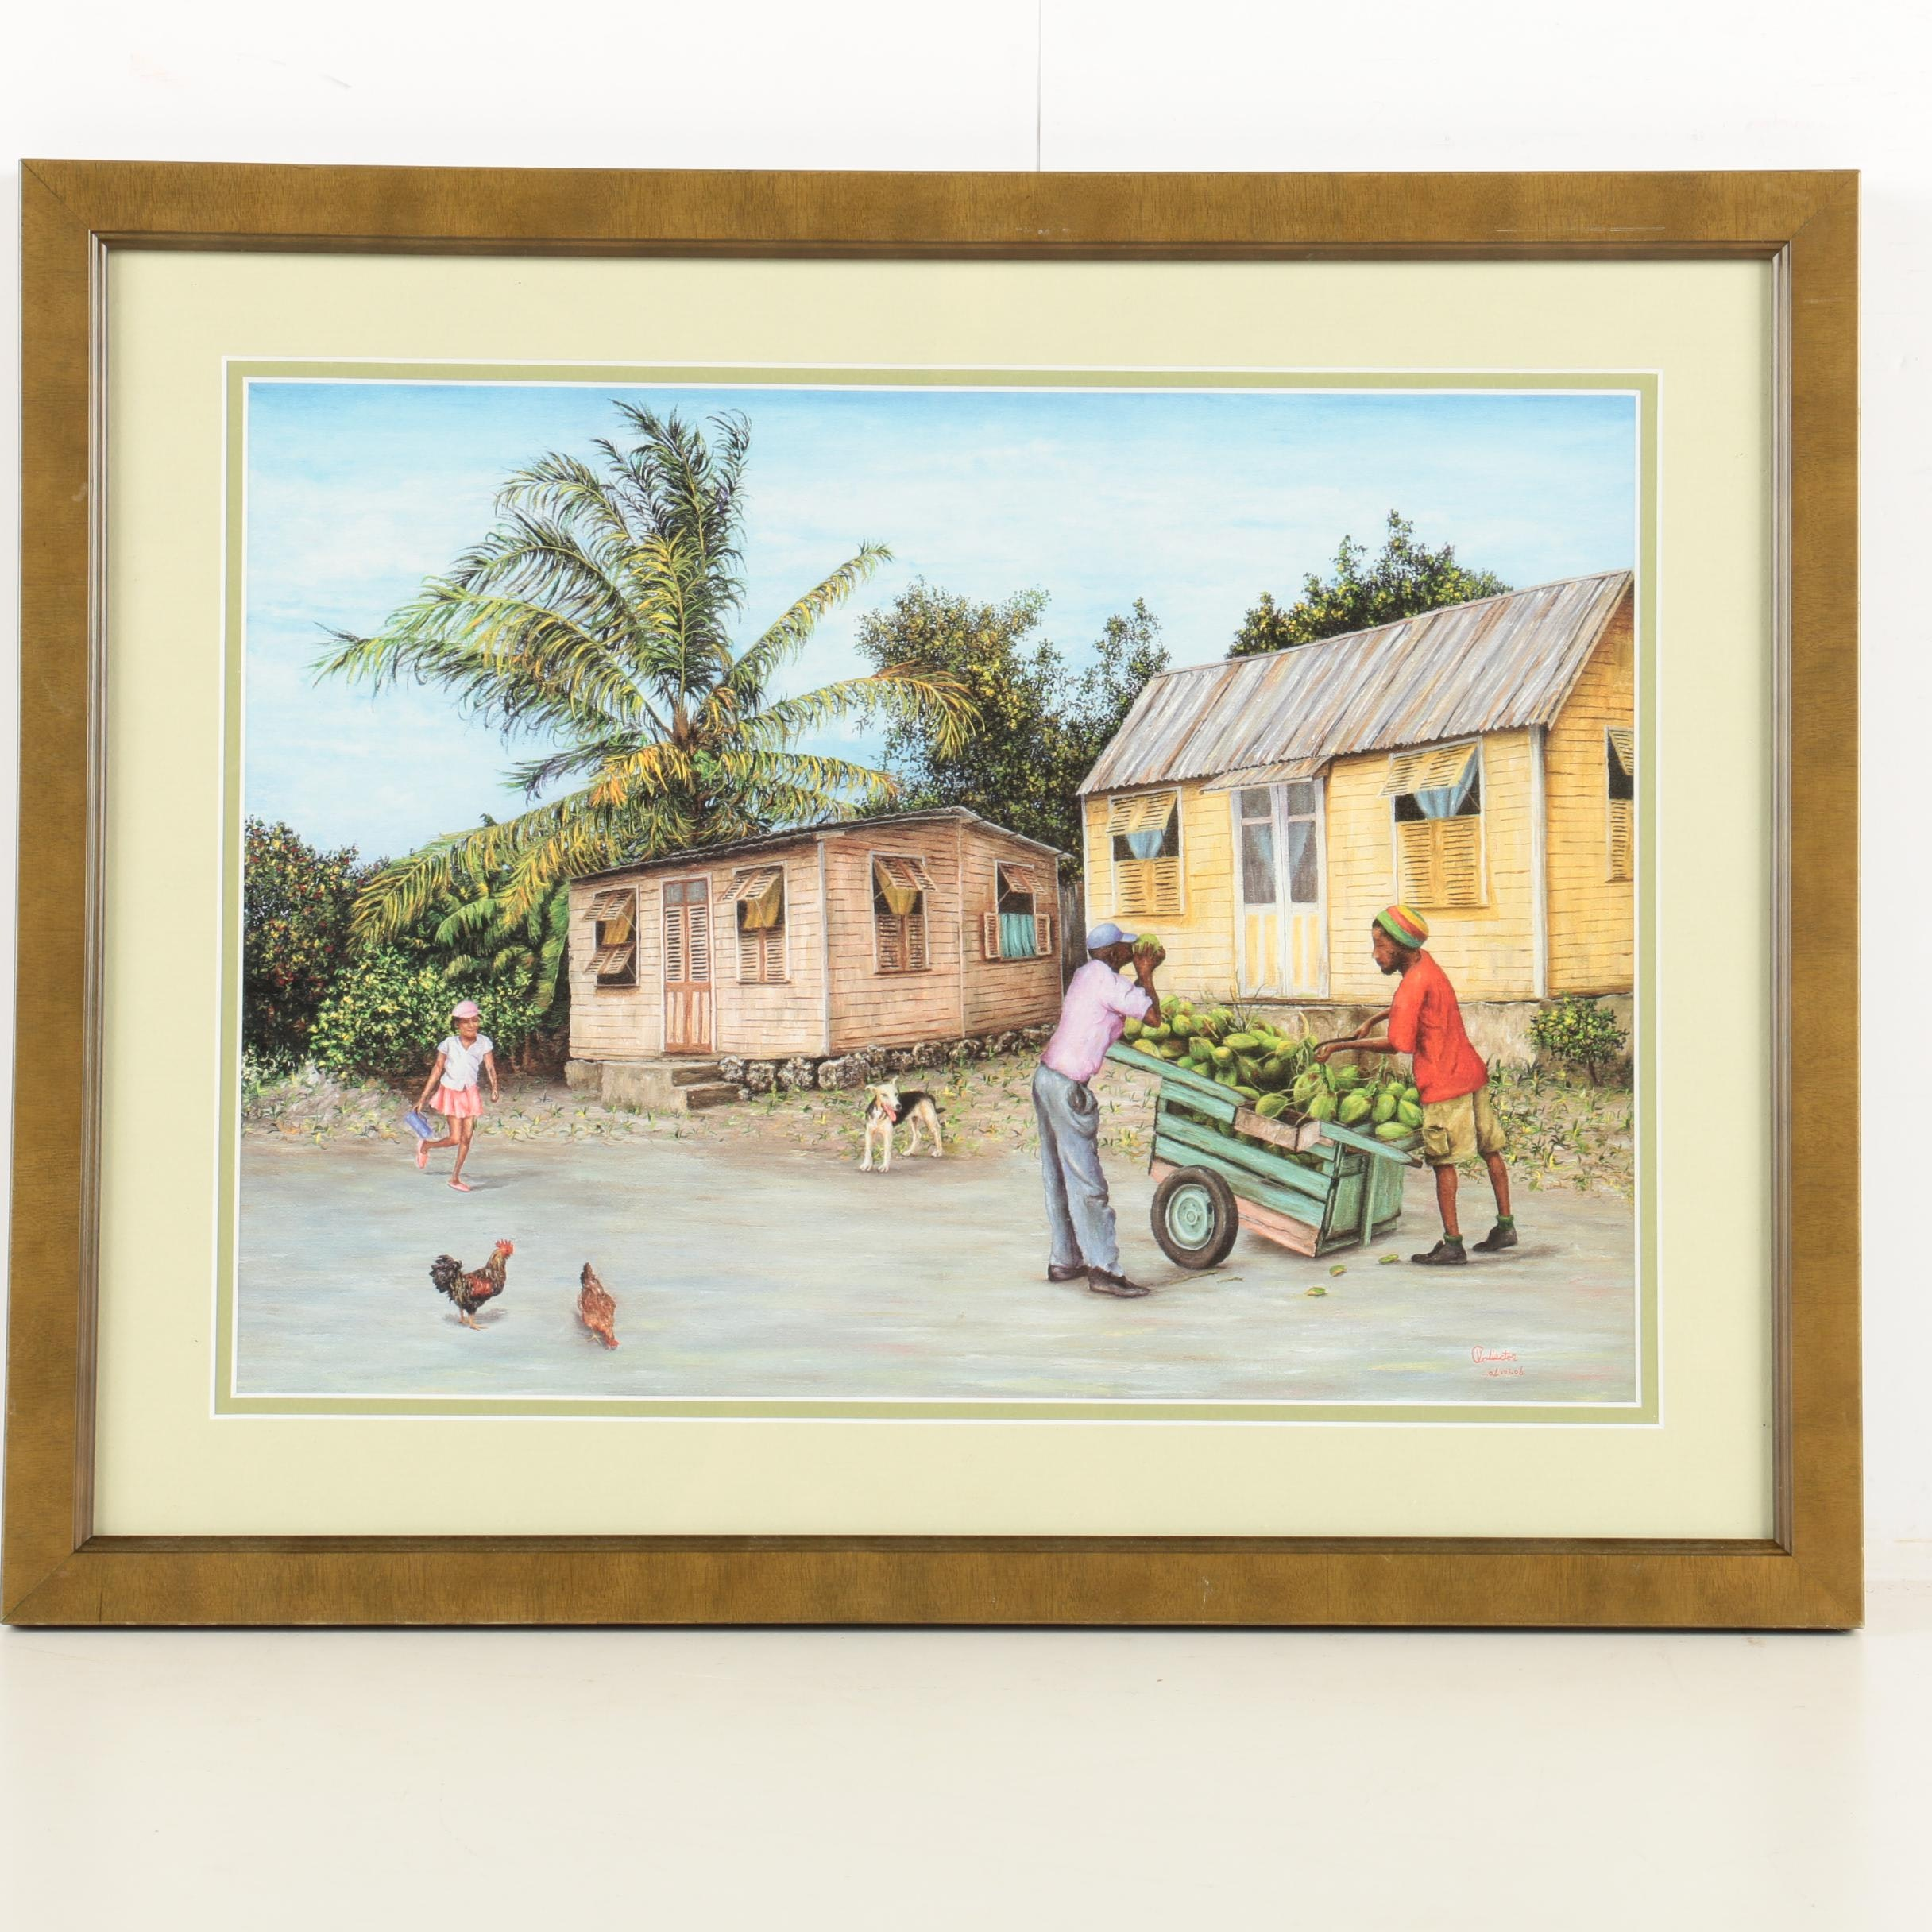 Signed Offset Lithograph on Paper of a Caribbean Domestic Scene